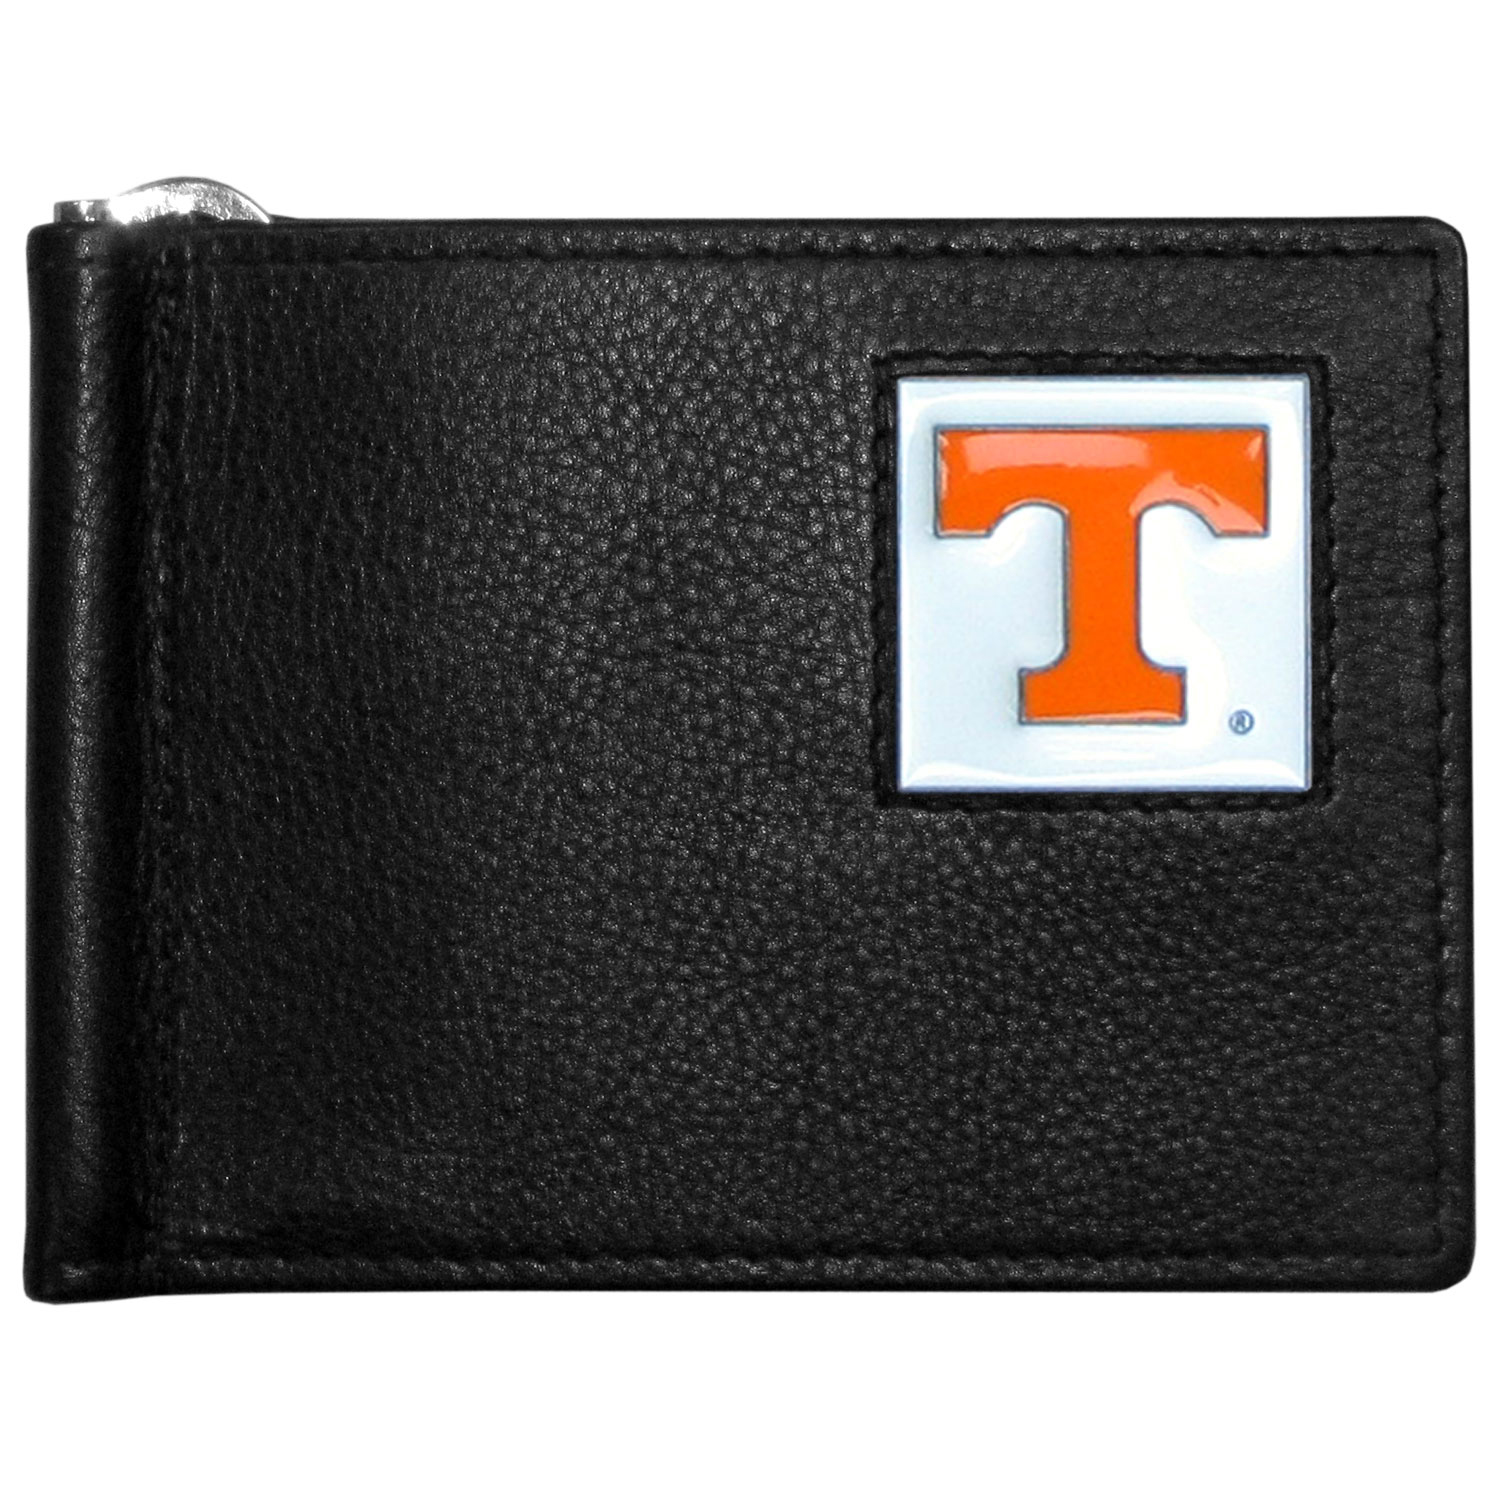 Tennessee Volunteers Leather Bill Clip Wallet - This cool new style wallet features an inner, metal bill clip that lips up for easy access. The super slim wallet holds tons of stuff with ample pockets, credit card slots & windowed ID slot. The wallet is made of genuine fine grain leather and it finished with a metal Tennessee Volunteers emblem. The wallet is shipped in gift box packaging.